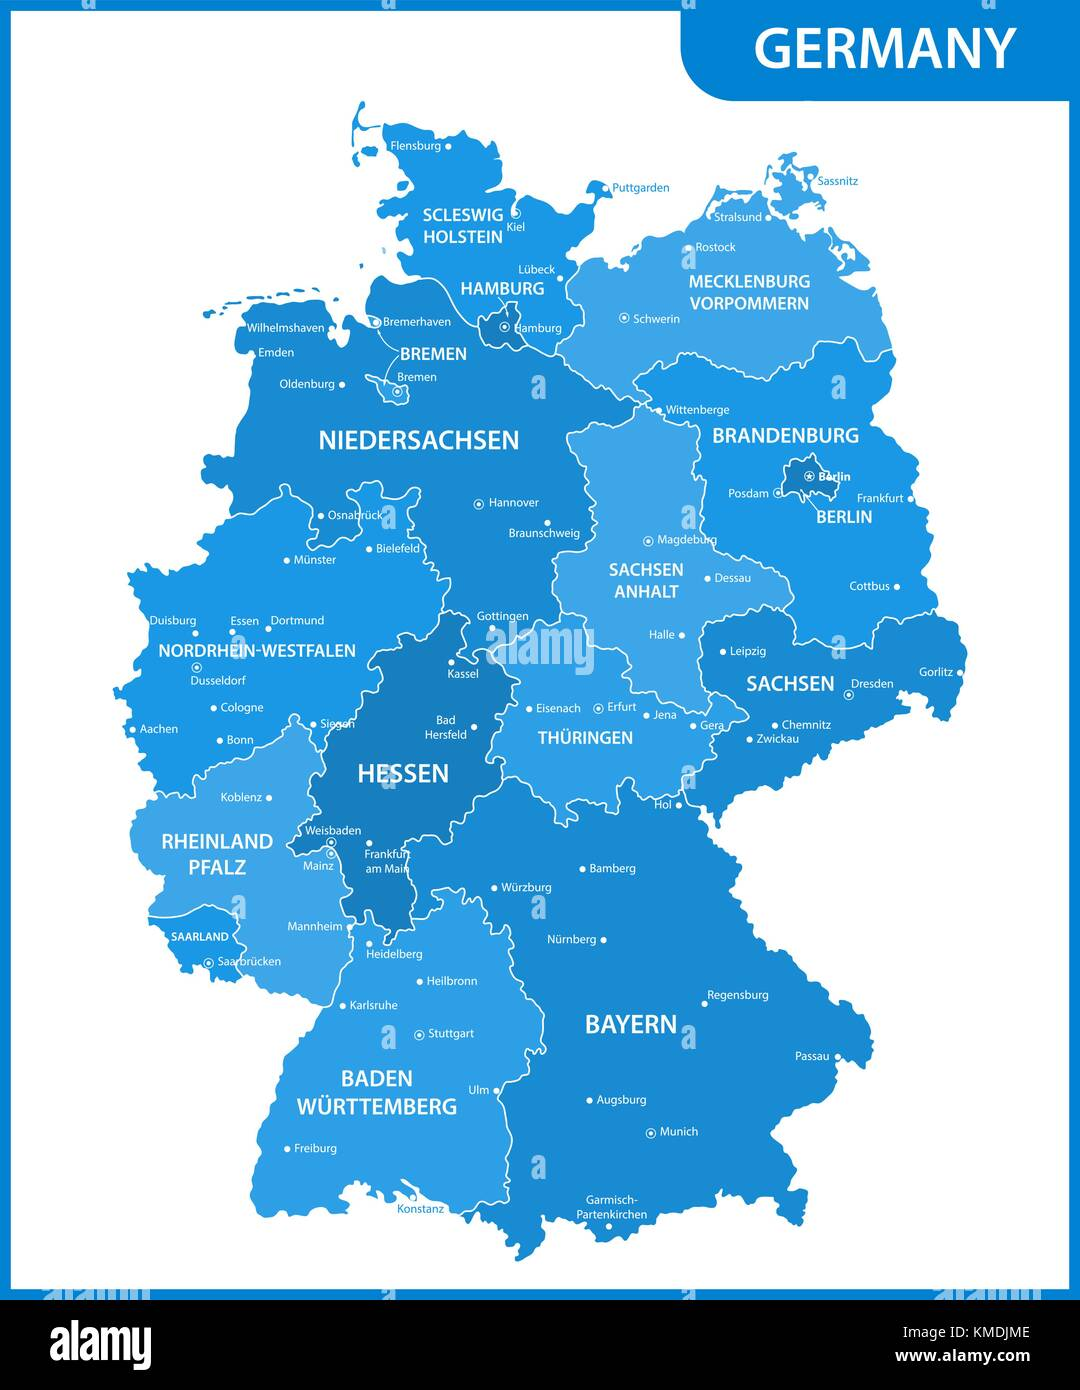 Map Of Cities In Germany.The Detailed Map Of The Germany With Regions Or States And Cities